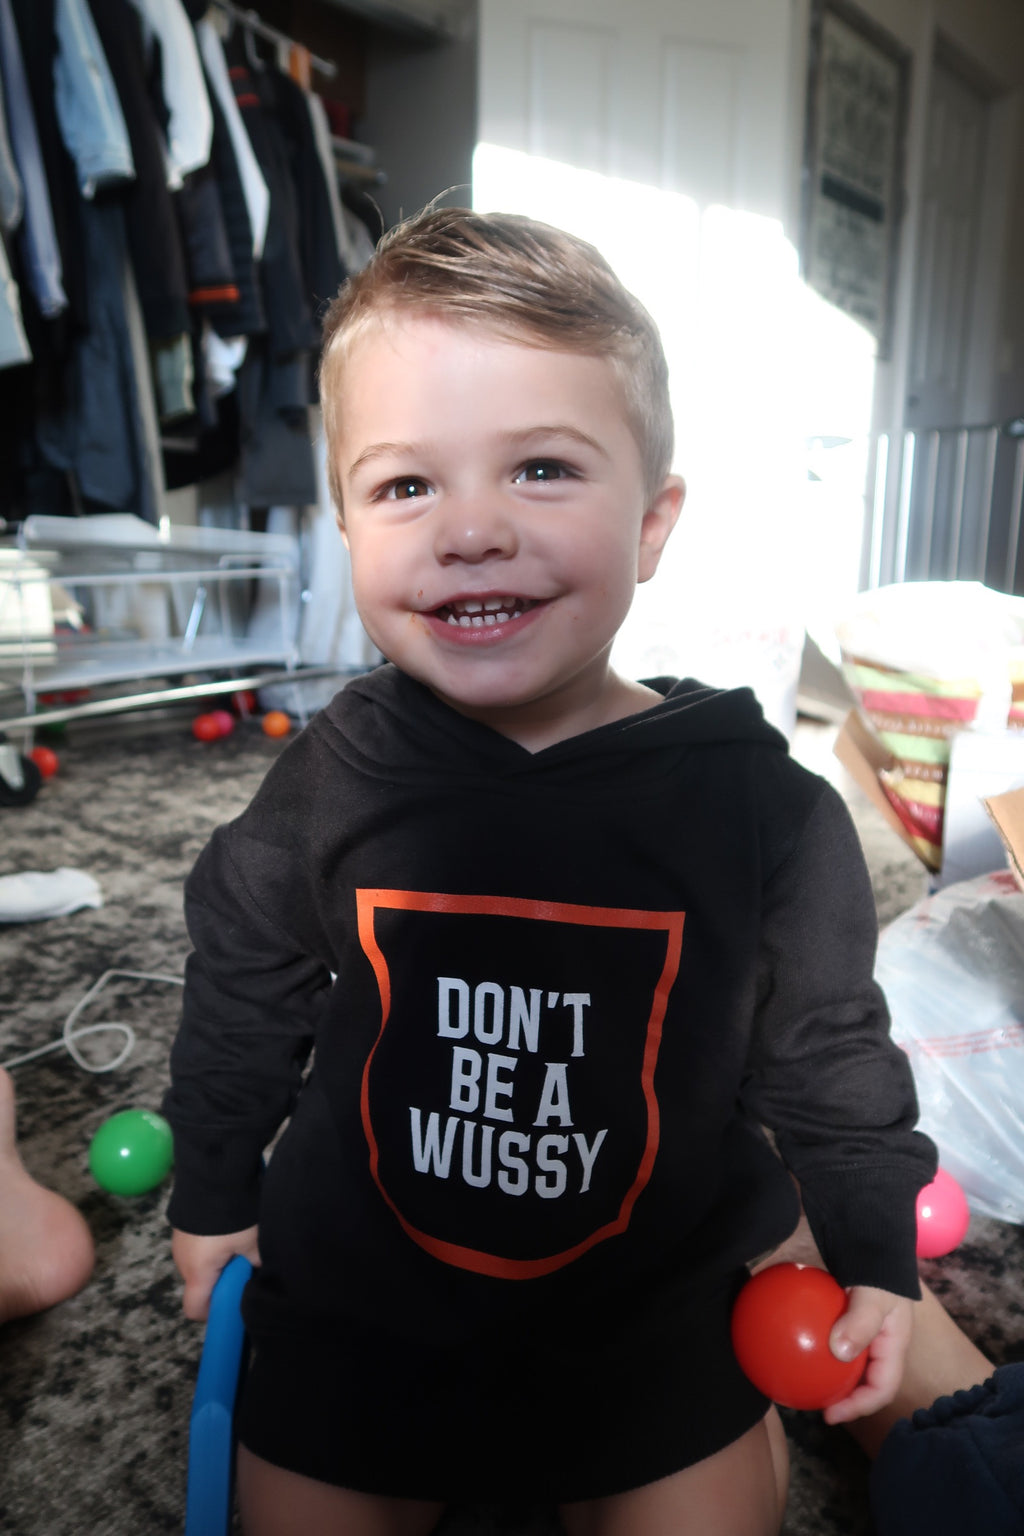 DONT BE A WUSSY toddler hoodie